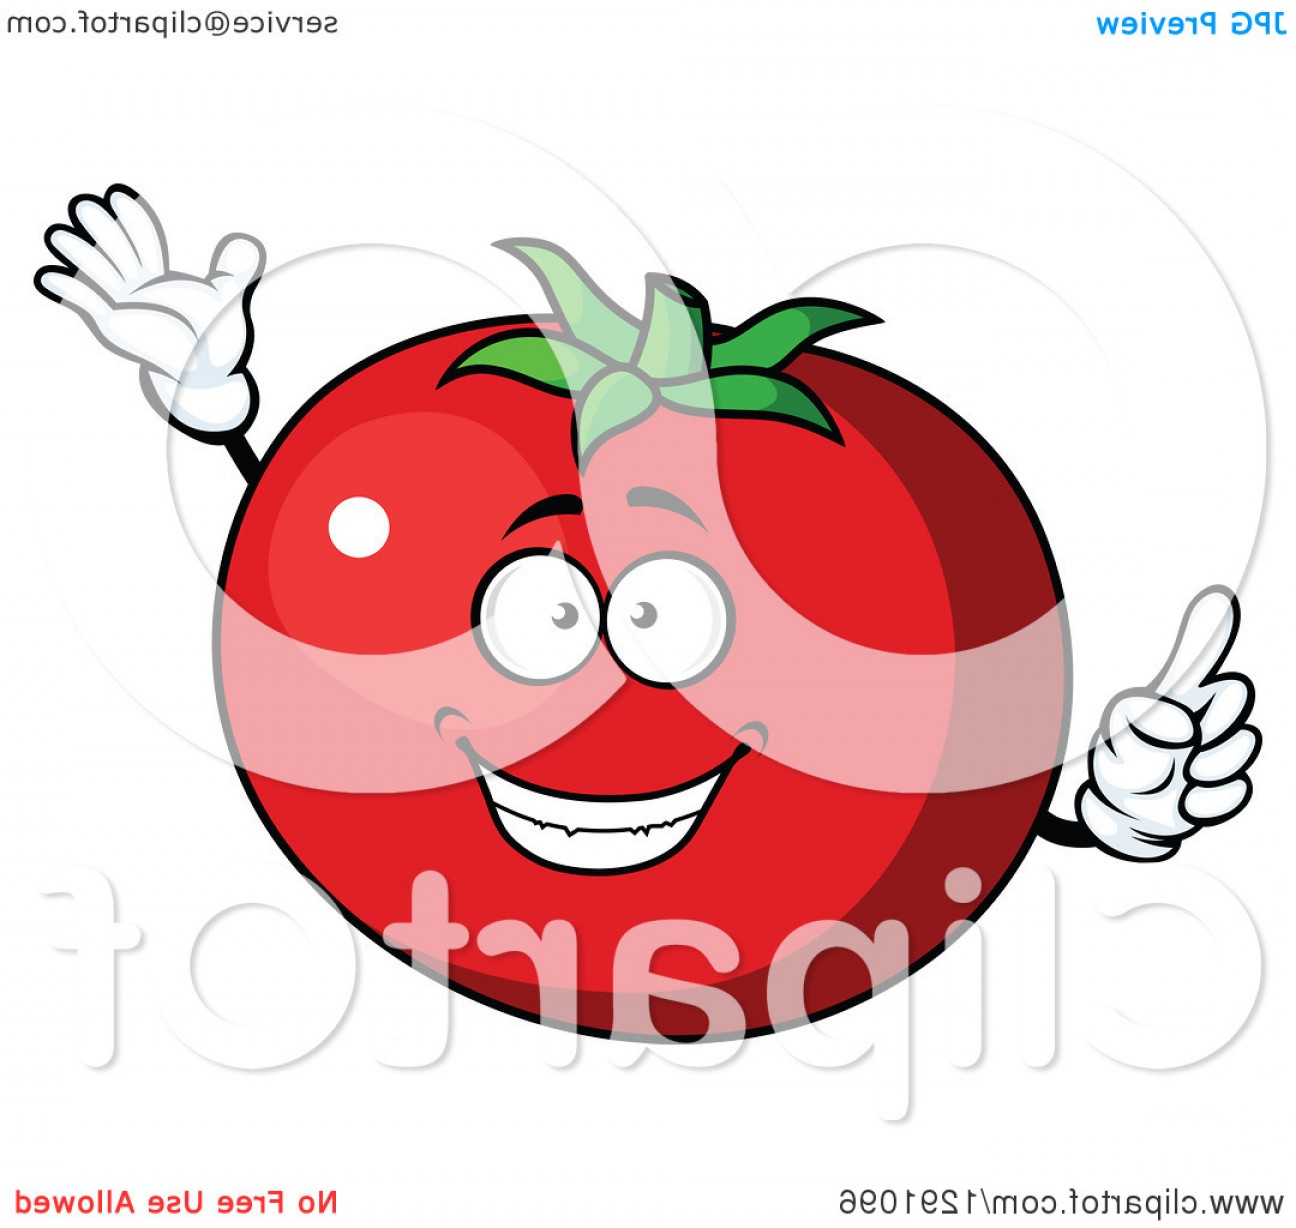 Excellent Cartoon Beefsteak Tomato Character Talking Image.